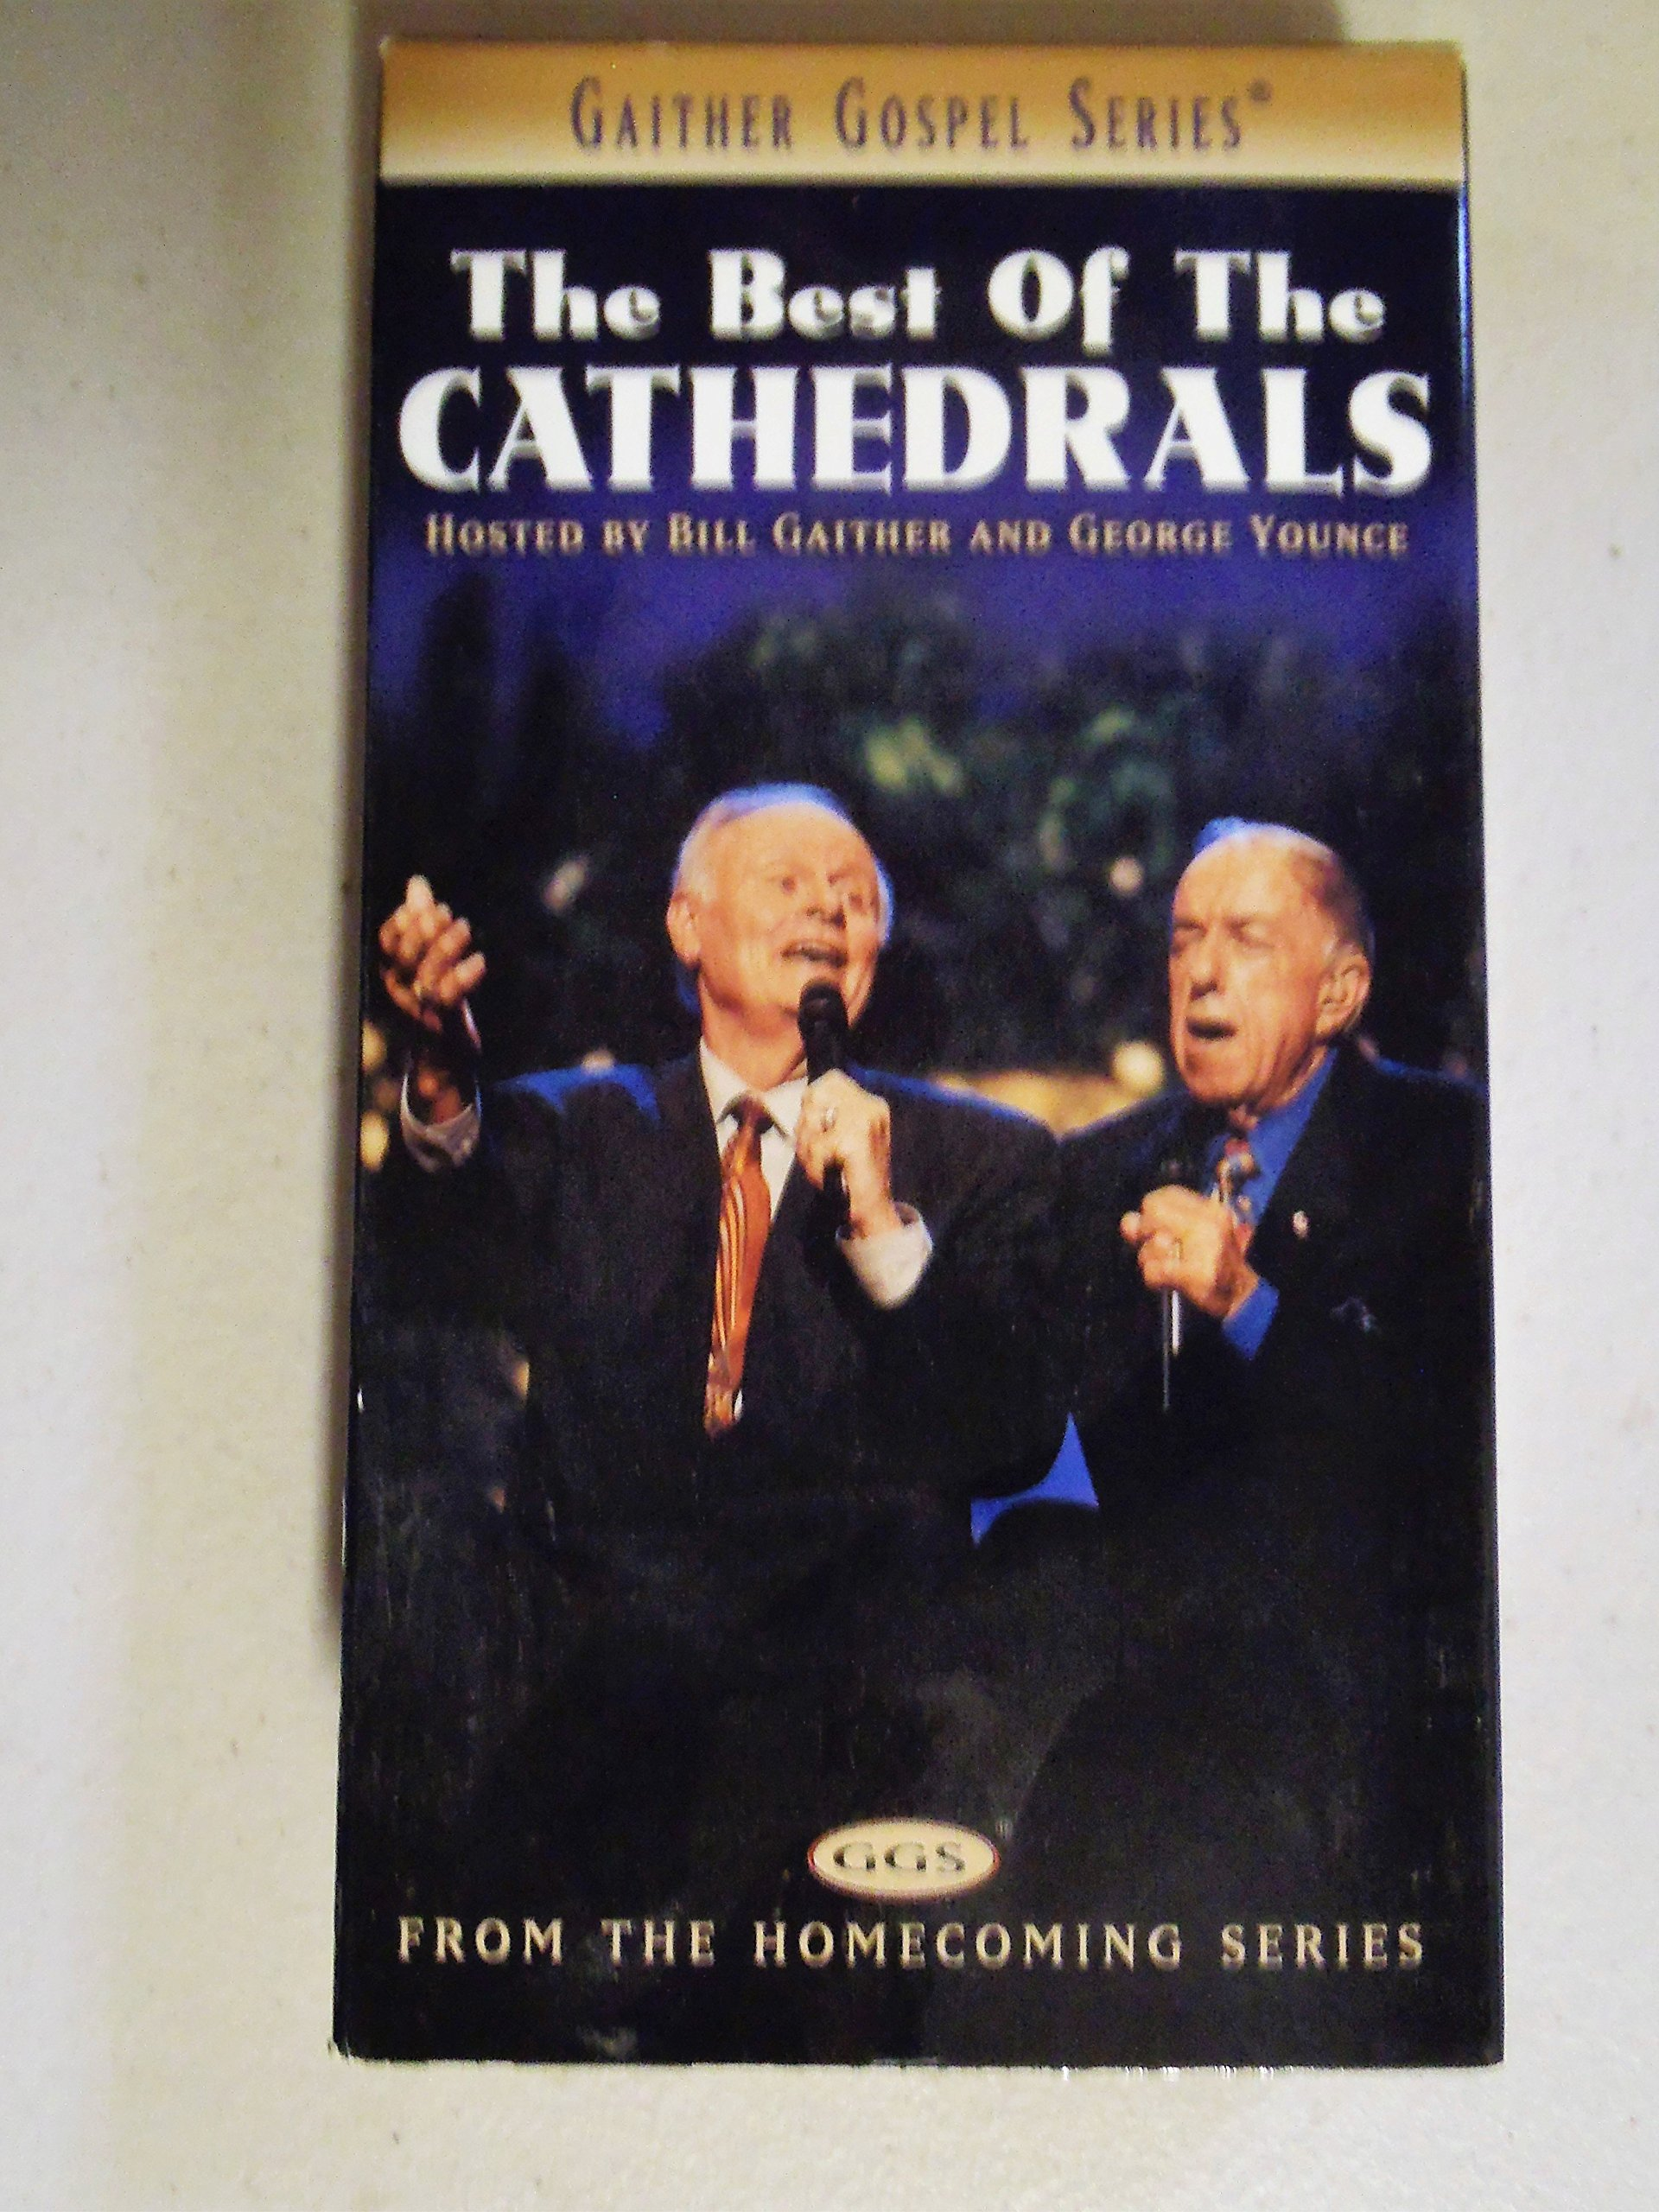 The Best of The Cathedrals - Gaither Gospel Homecoming Series [VHS]